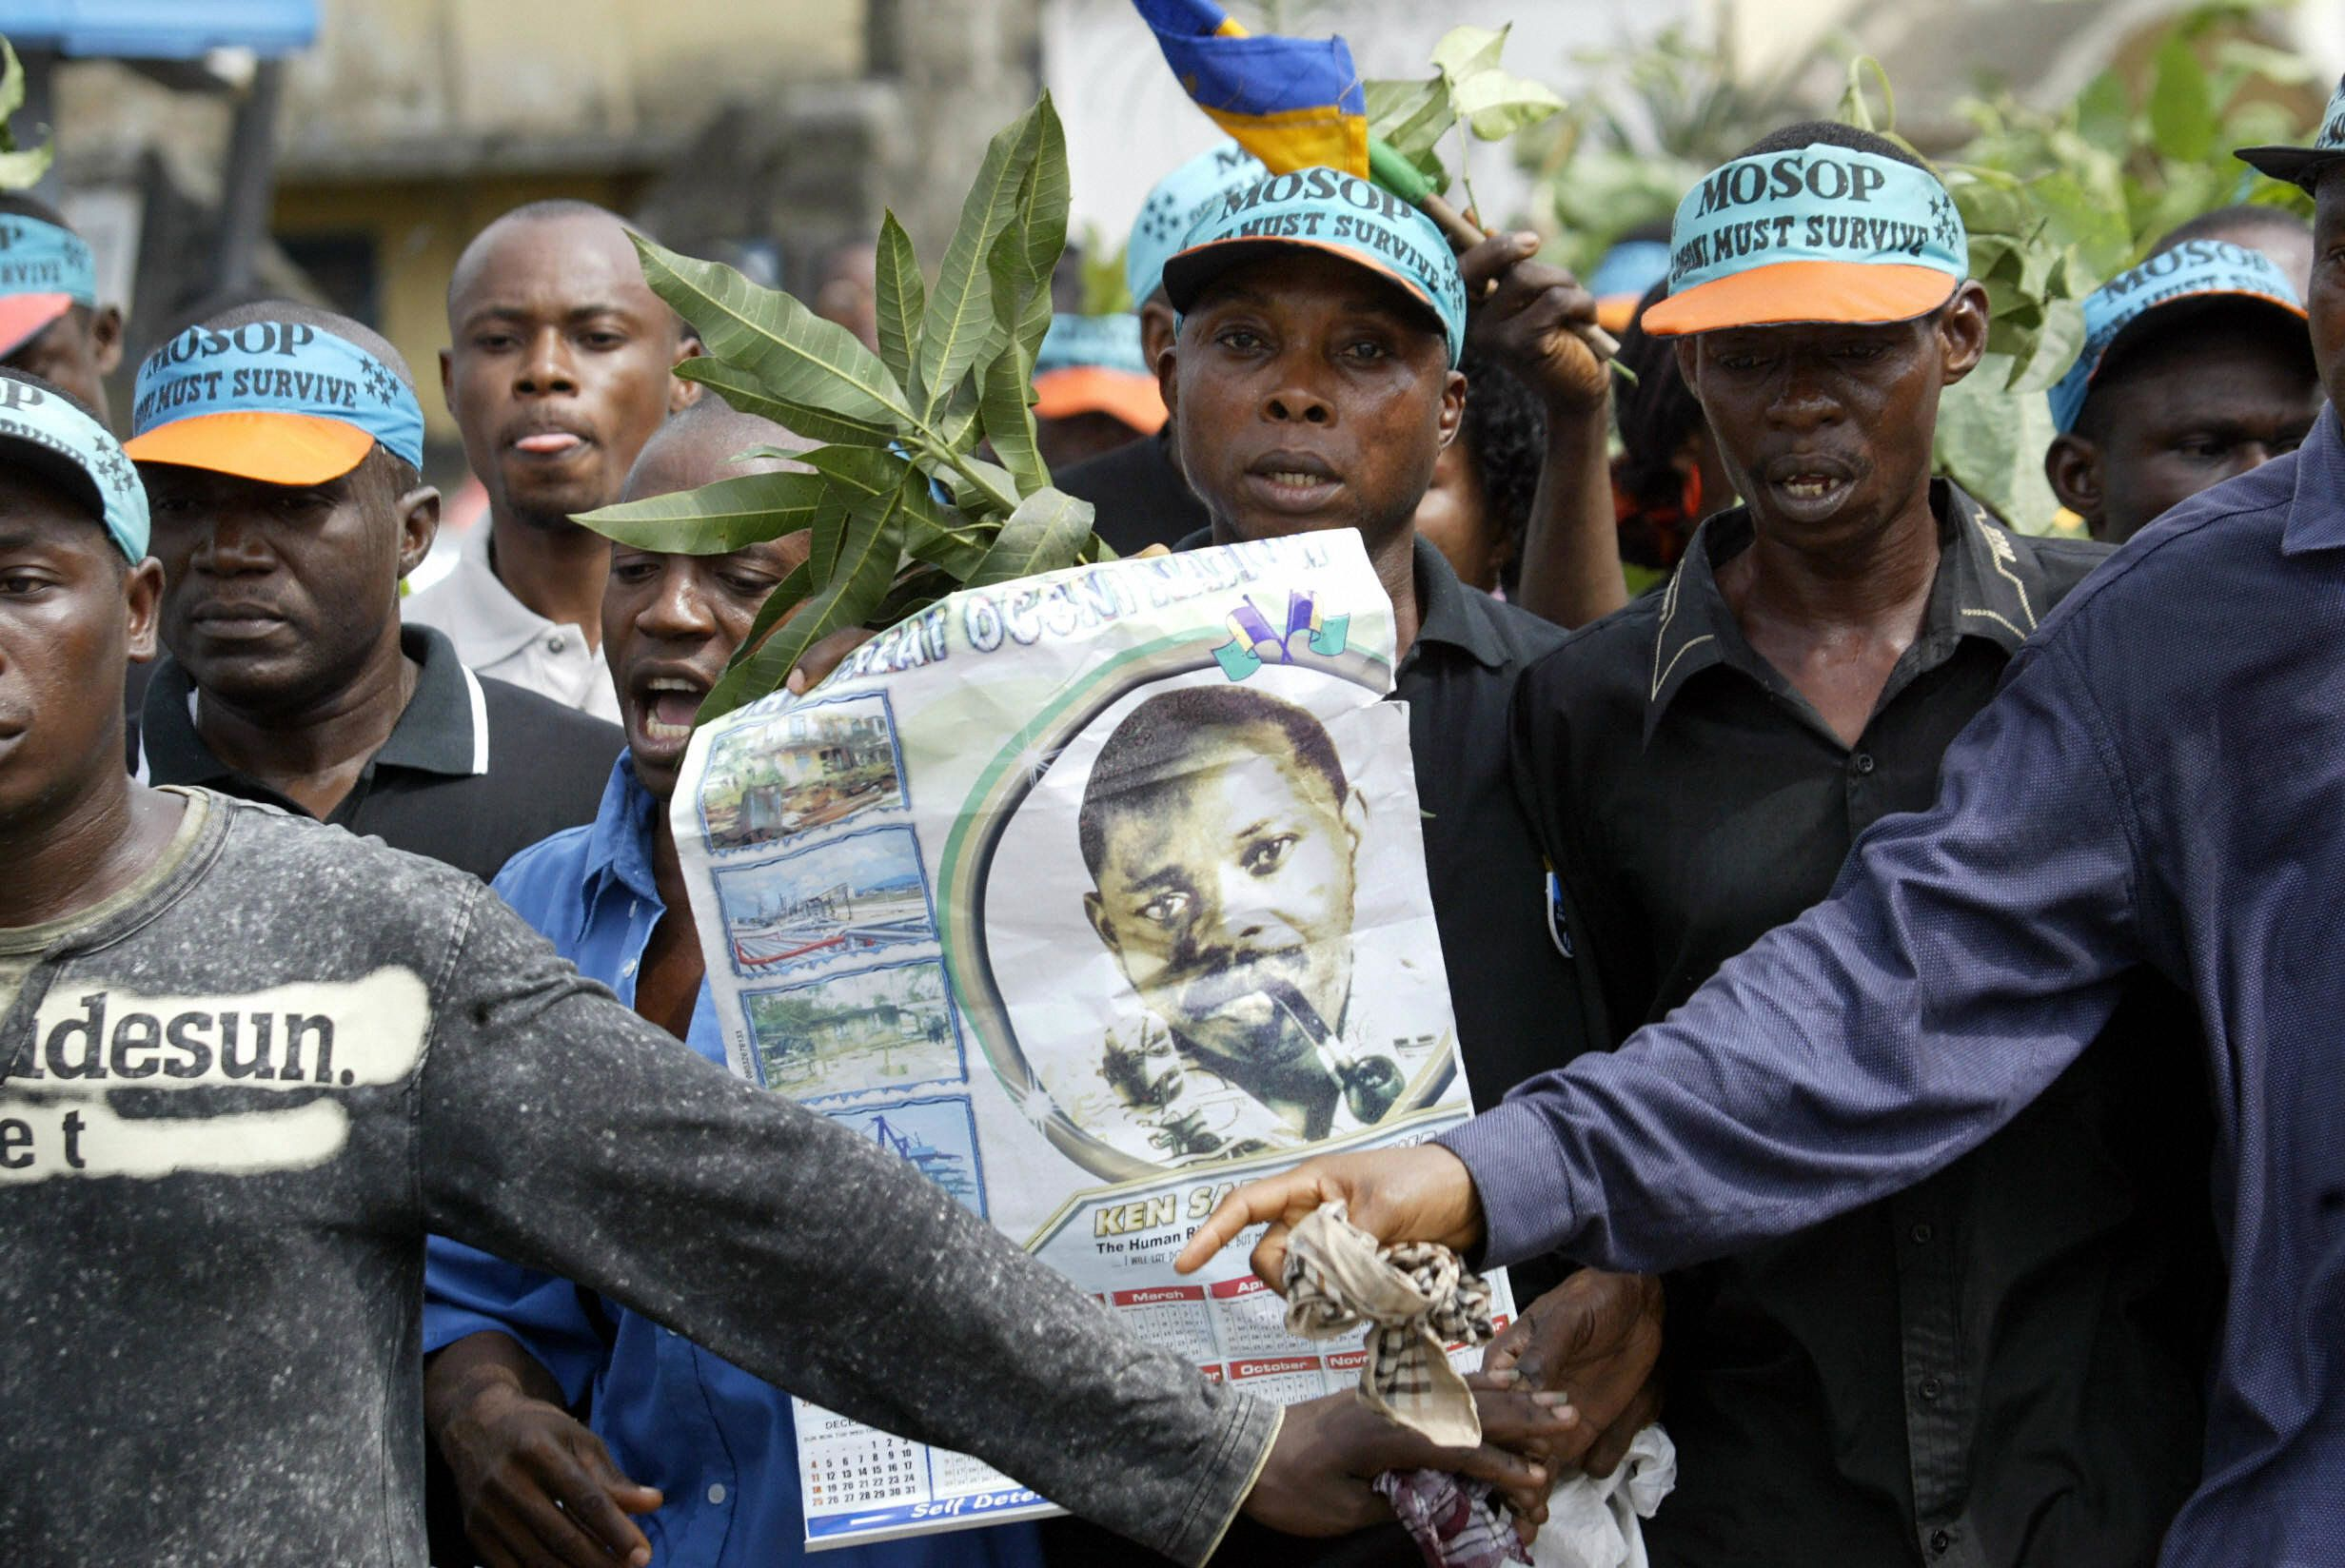 Ogoni activists carrying a poster of Ken Saro-Wiwa march on the Port Harcourt highway.